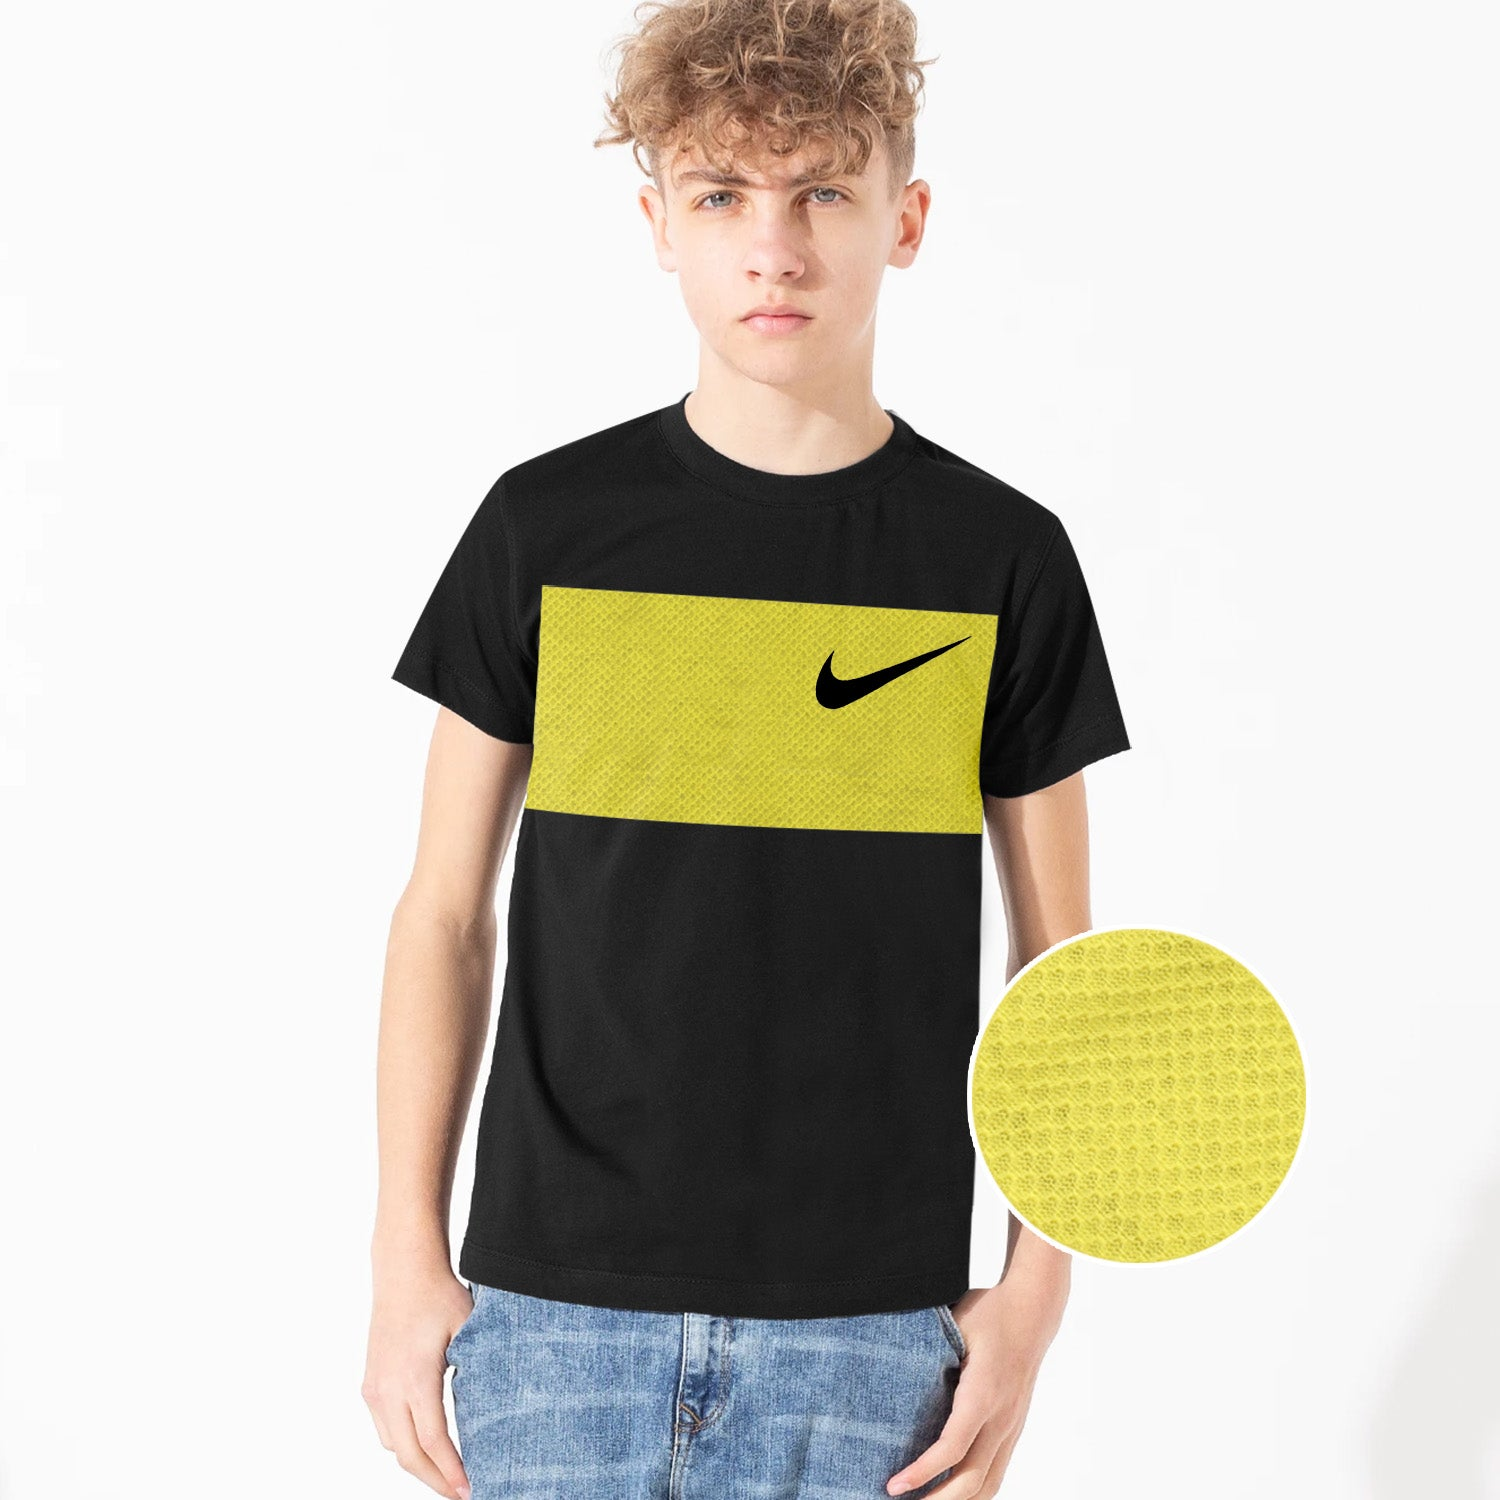 NK Crew Neck Single Jersey Tee Shirt For Kids-Black & Texture Yellow Panels-BE12416